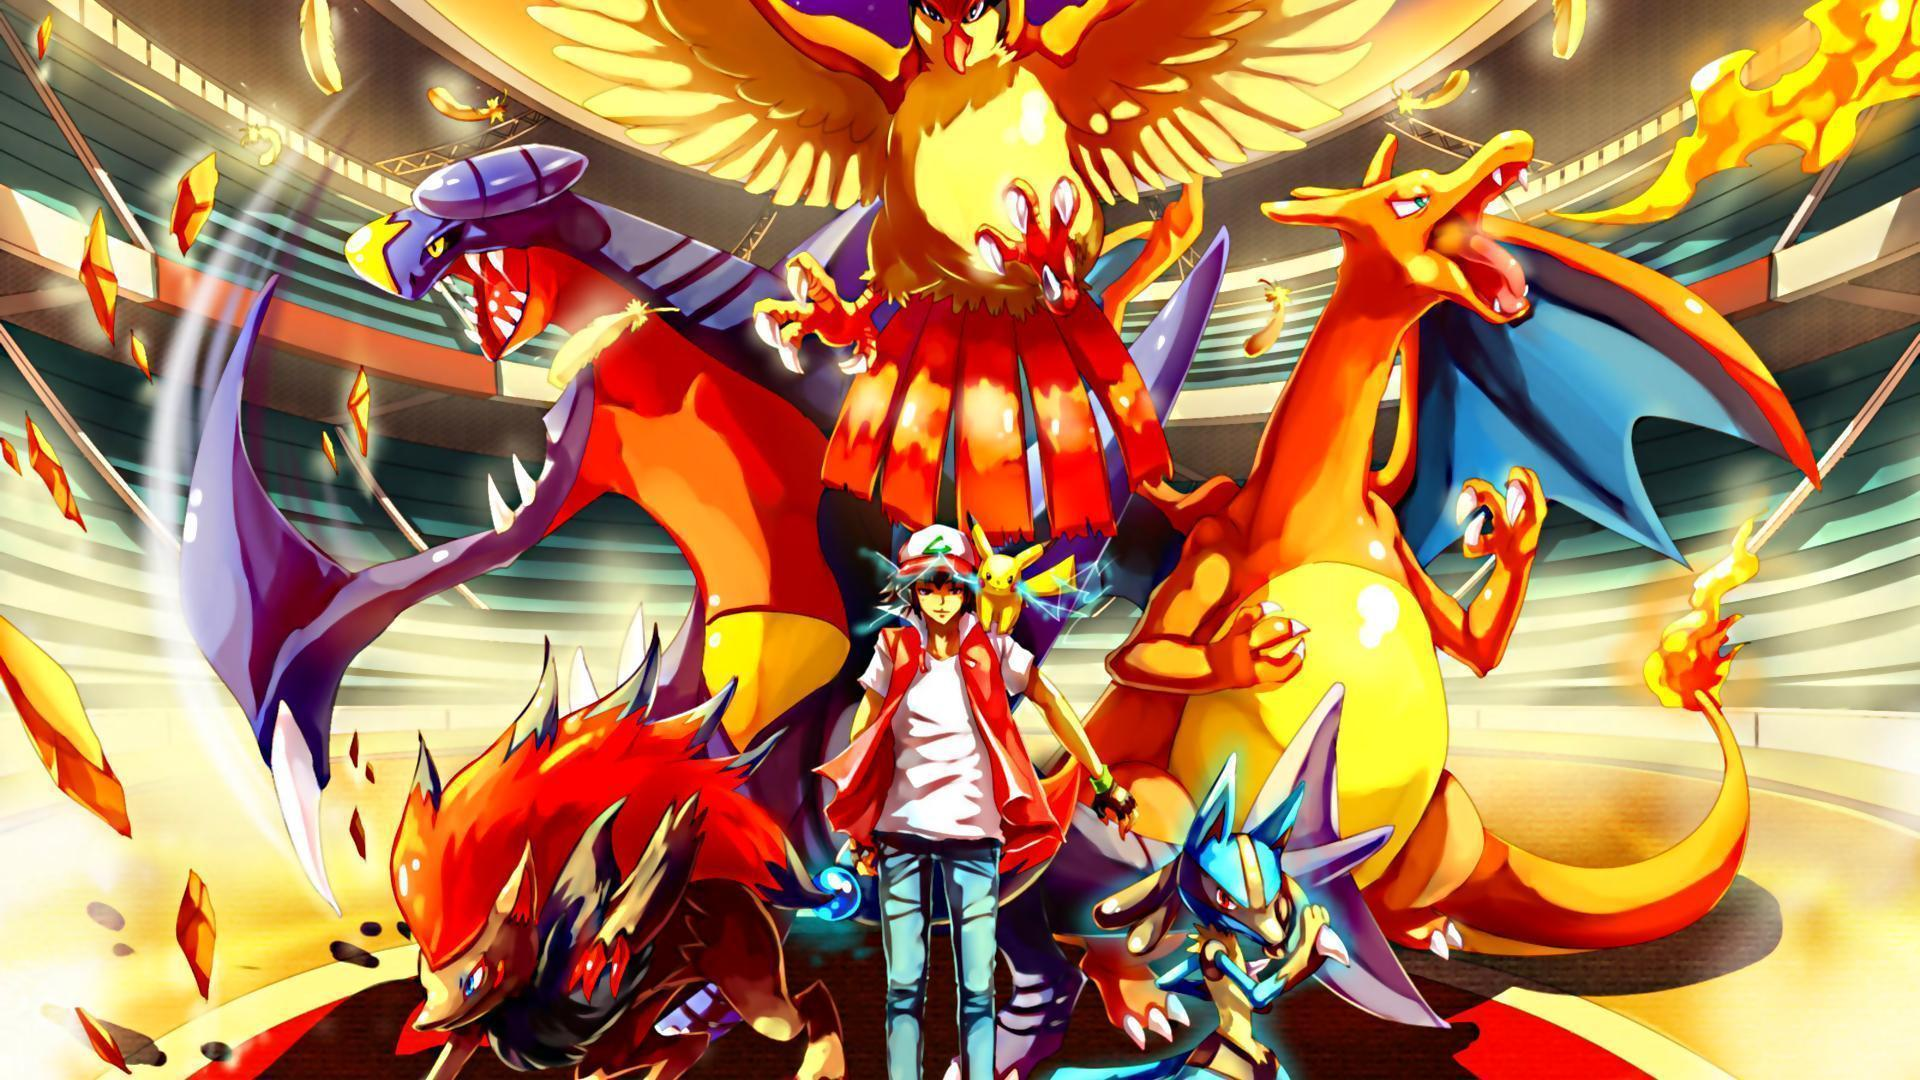 Wallpapers For > Red Vs Blue Wallpapers Pokemon